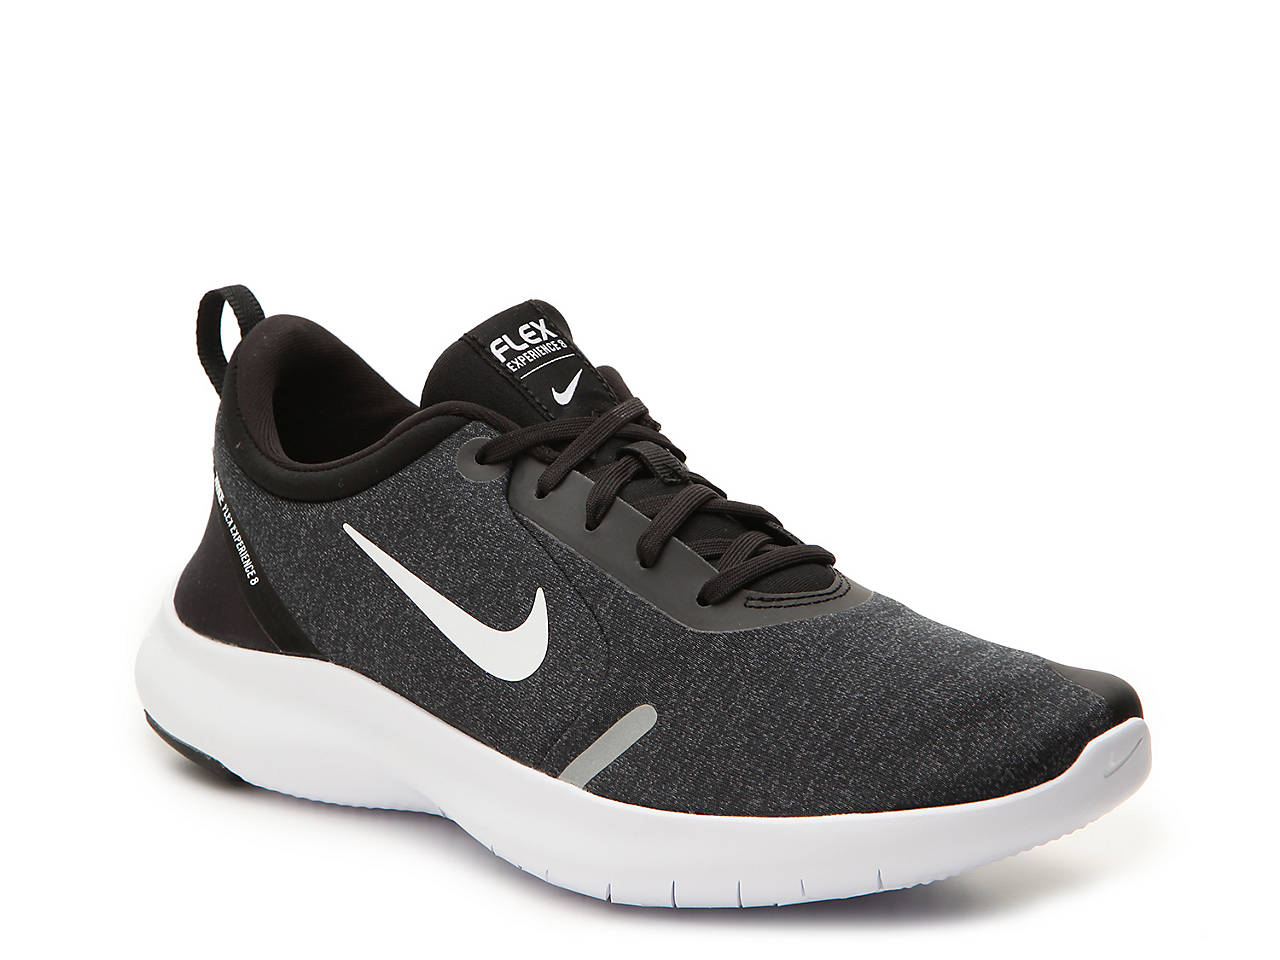 87c285de0f4 Nike Flex Experience Run 8 Lightweight Running Shoe - Men s Men s ...